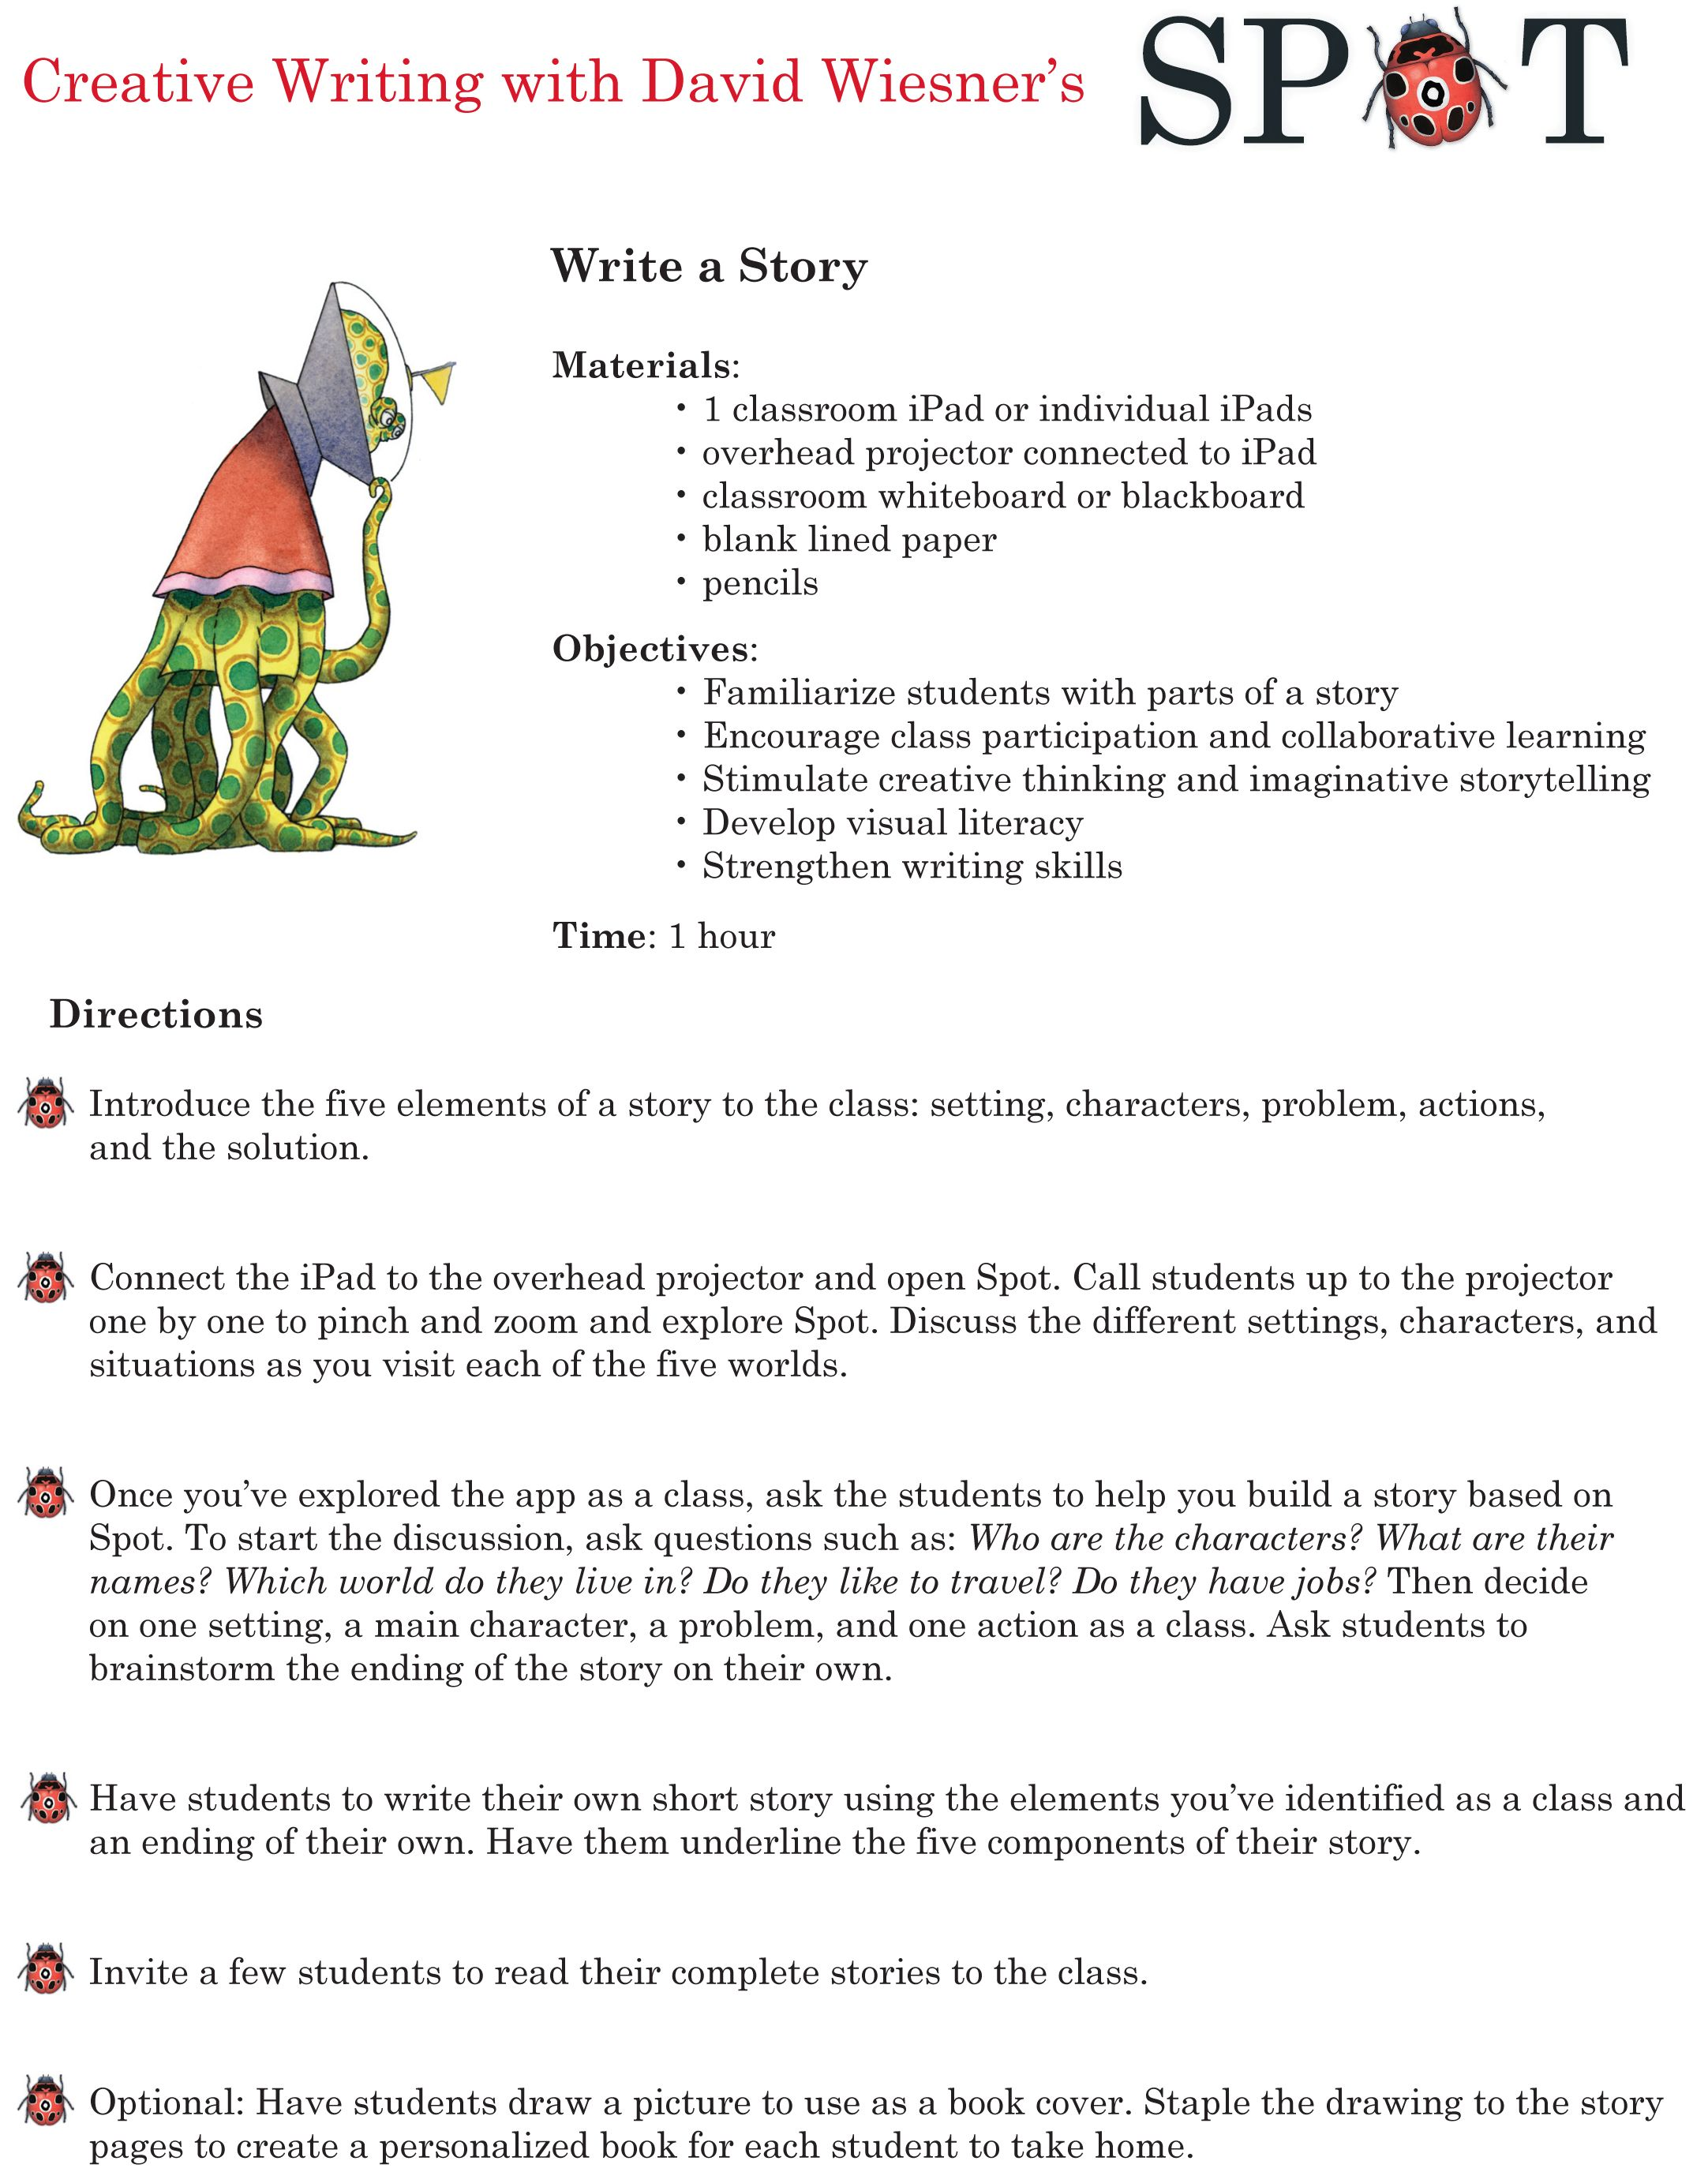 Creative Writing Lesson Plan with David Wiesner's Spot